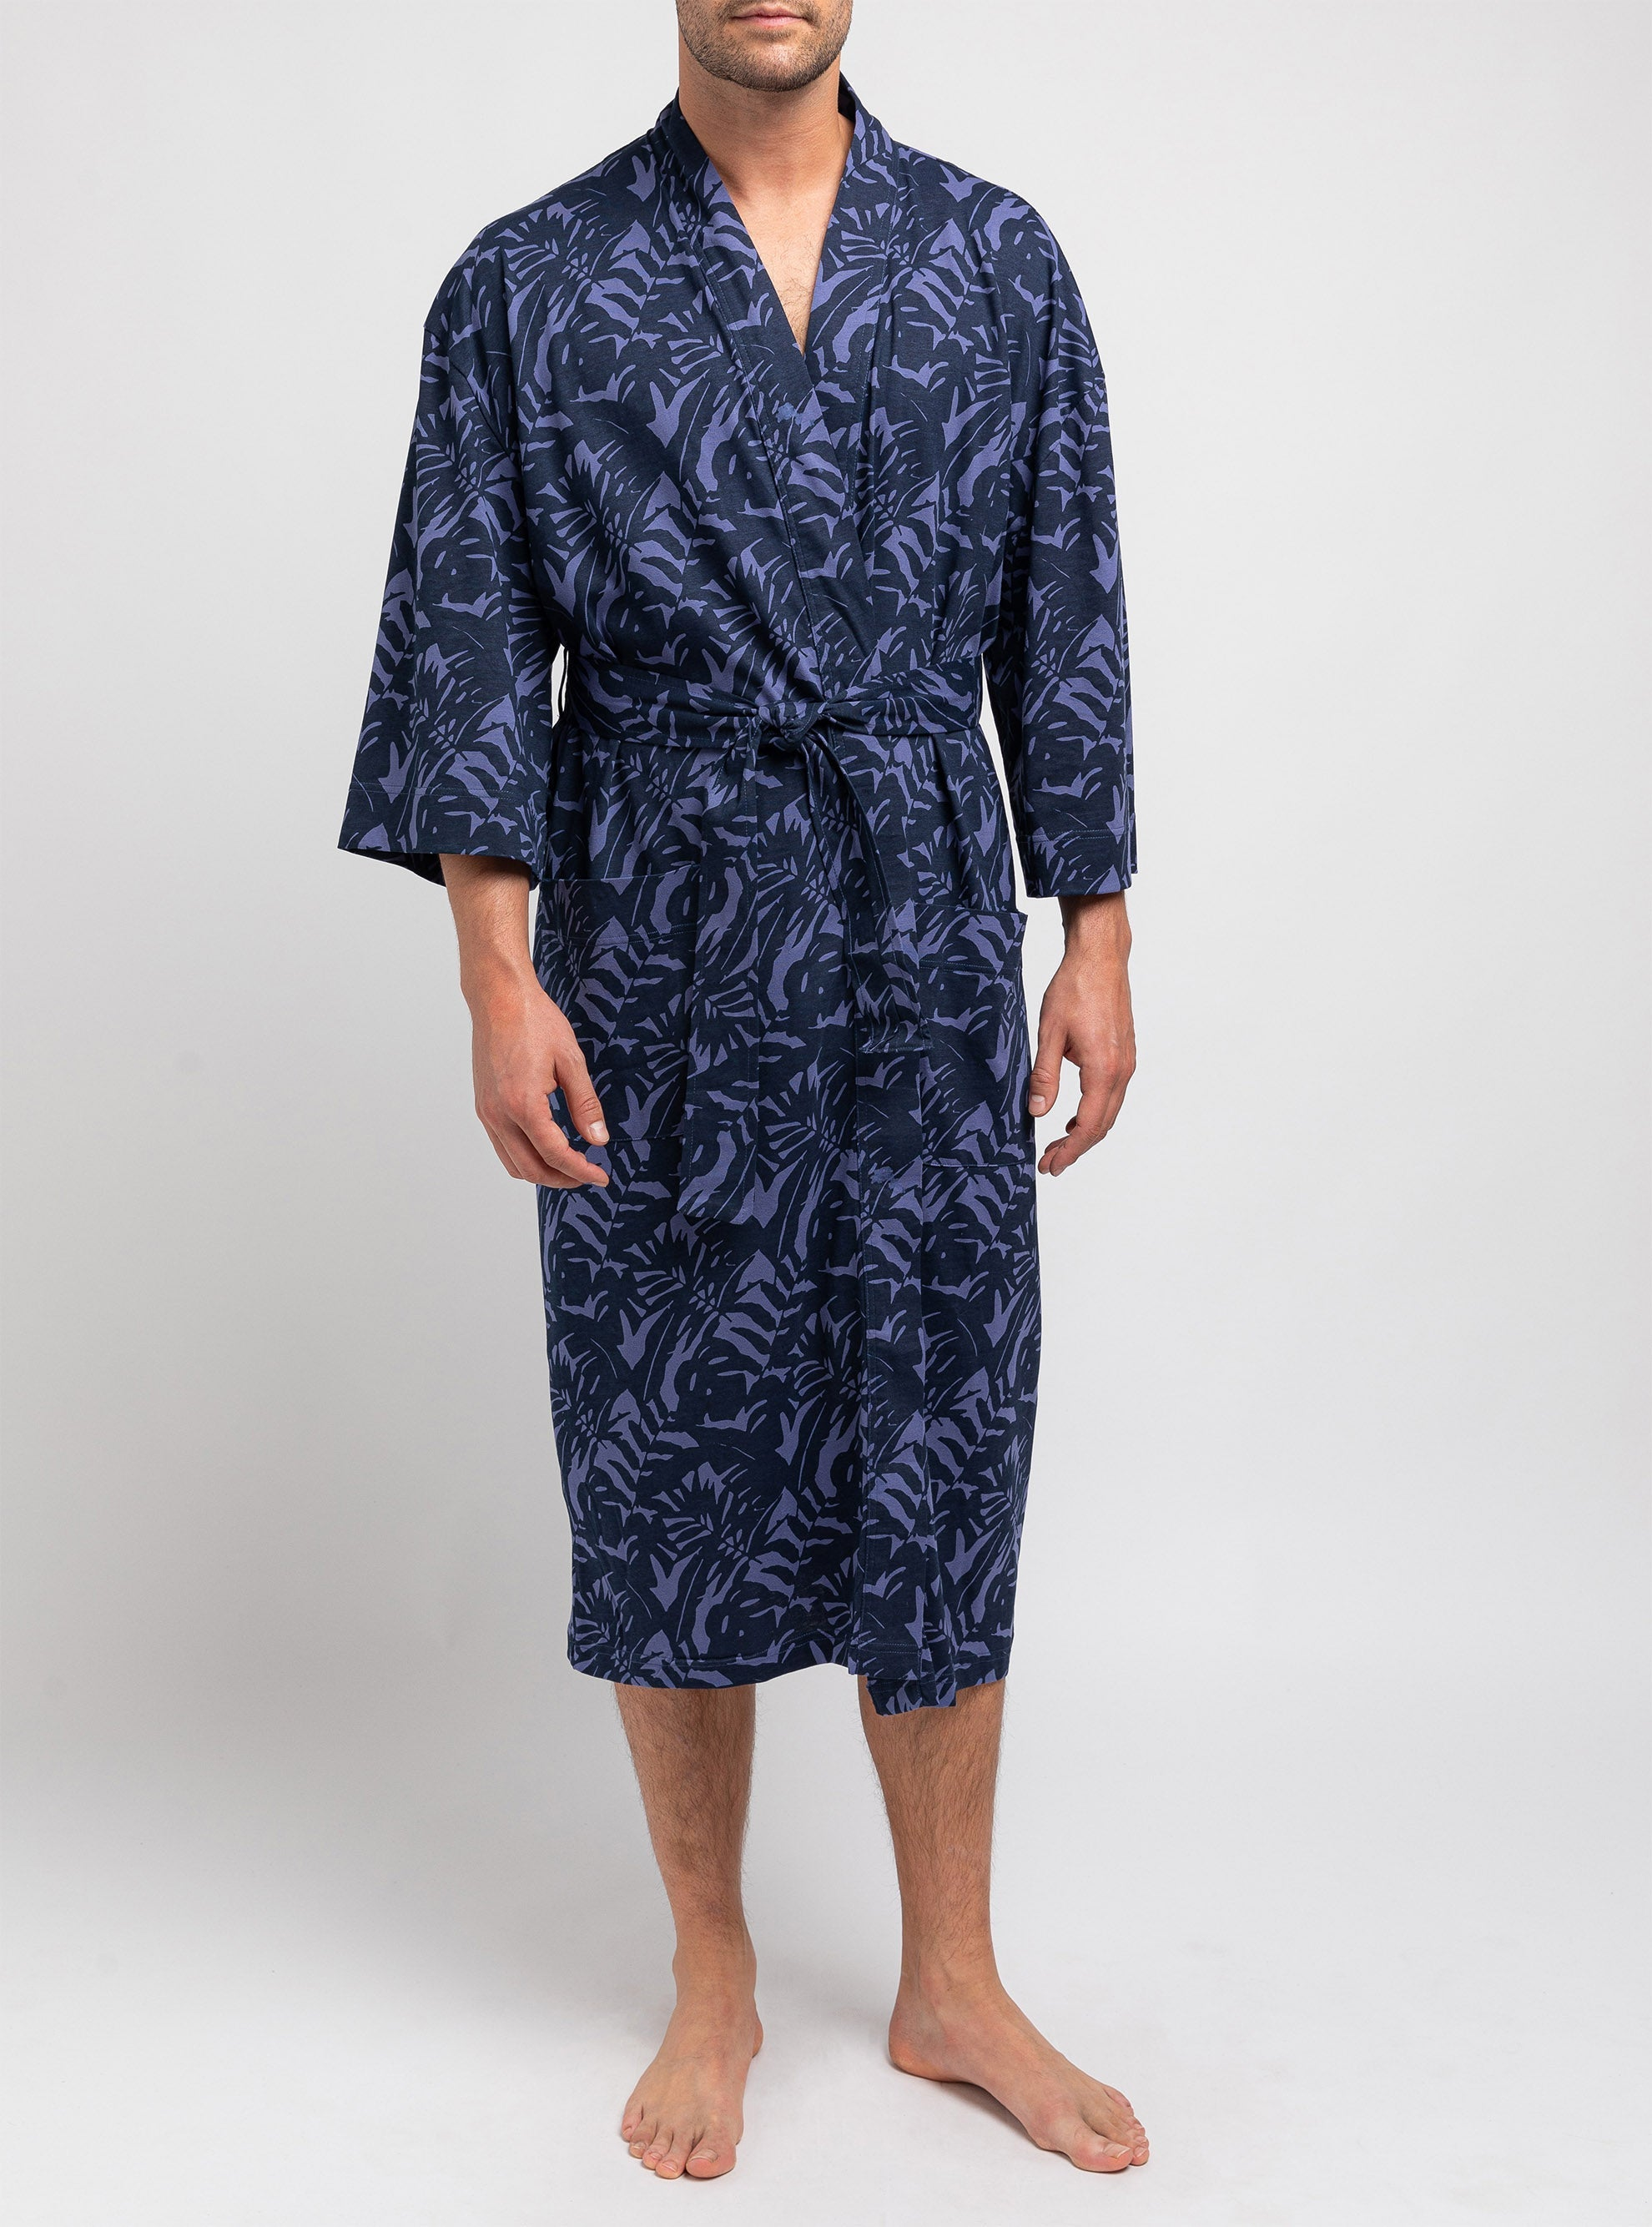 Navy bathrobe with leafs patterns